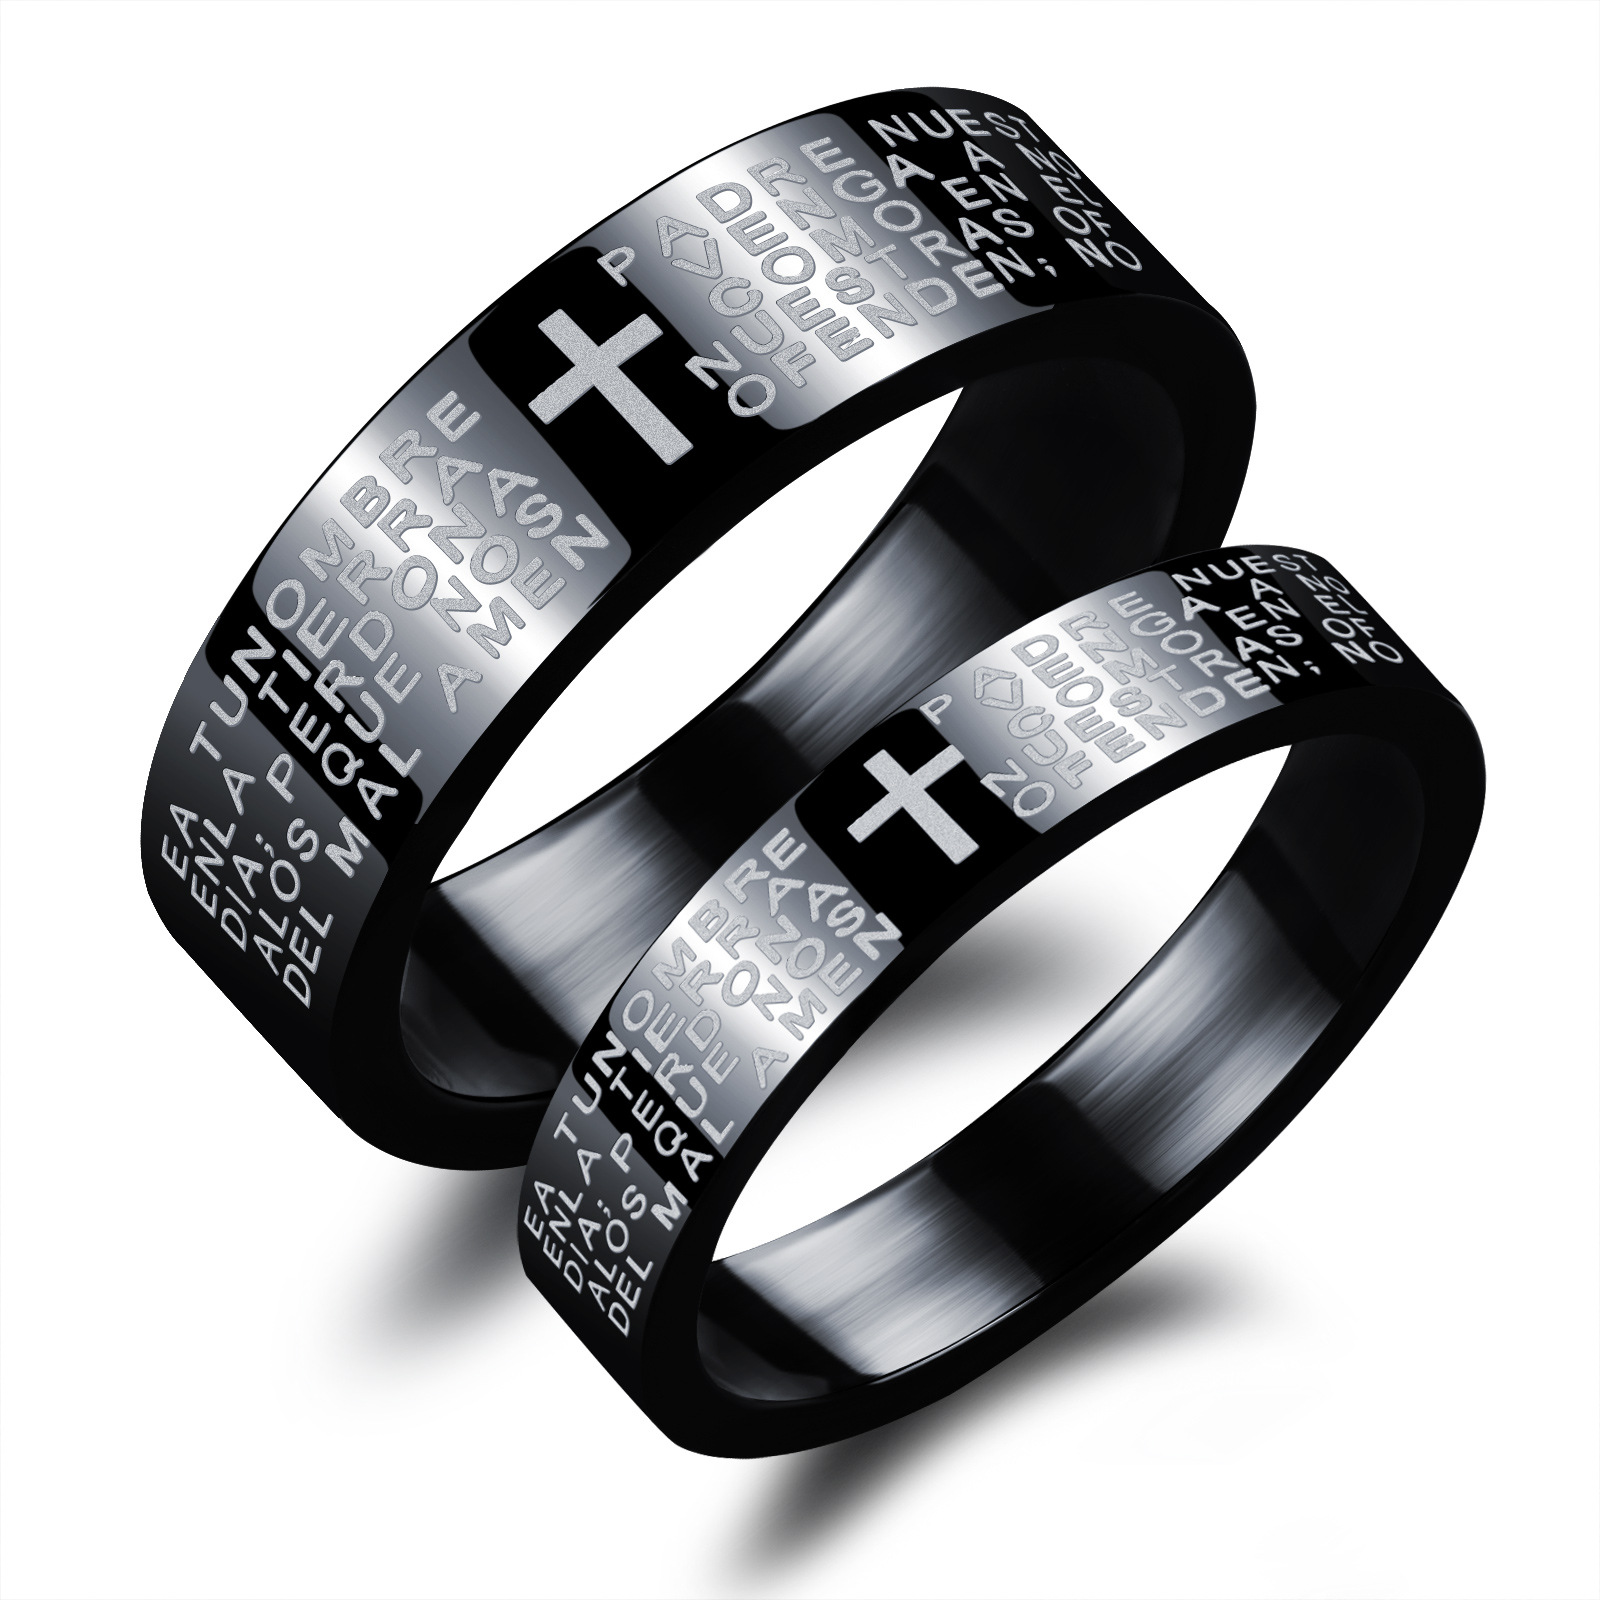 black wedding band sets Fable Designs Black Zirconium with Mossy Oak New Break up Camouflage Inlay Wedding Band